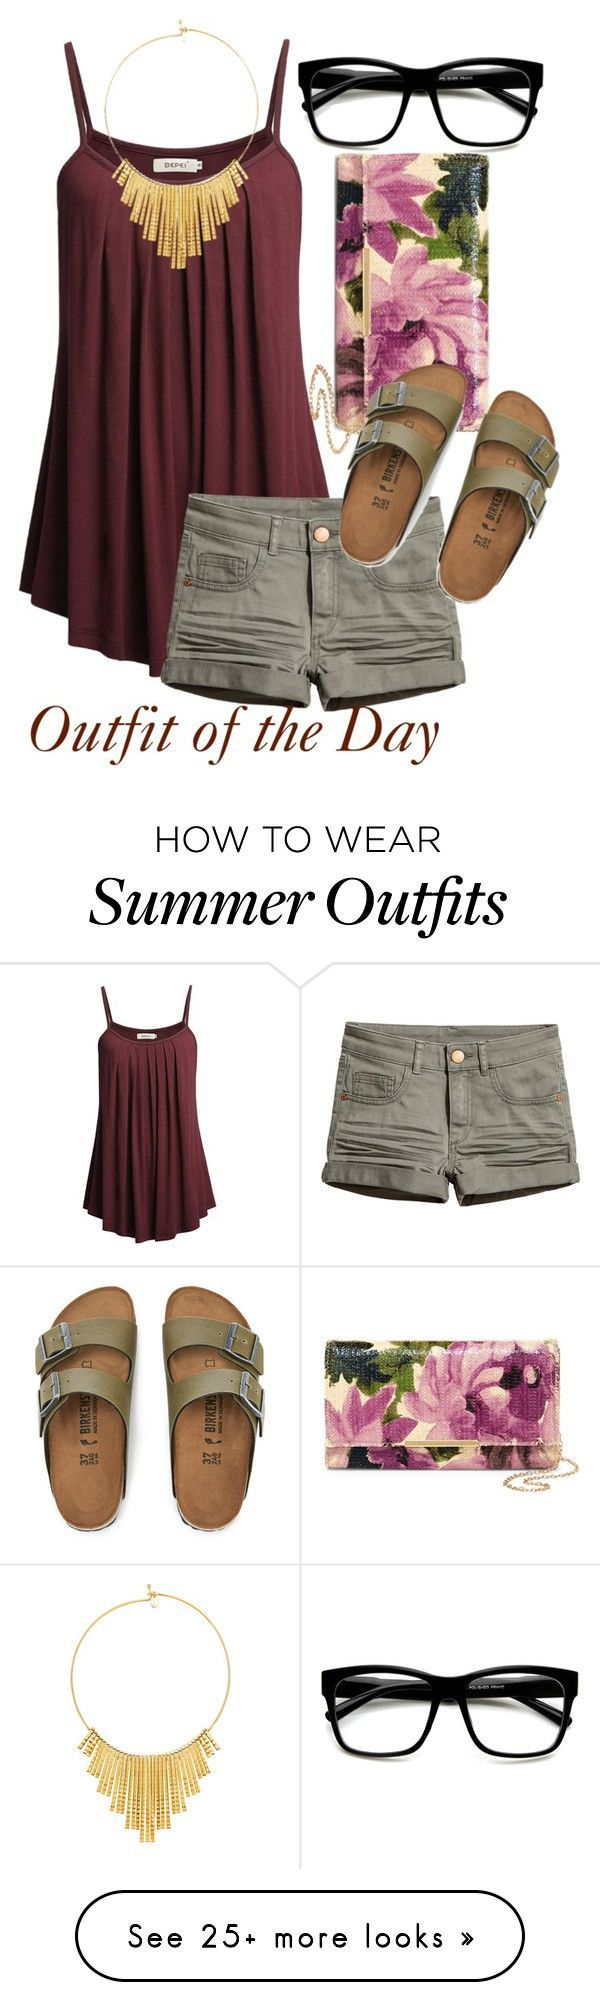 "d654a568a911 Collection Of Summer Styles ""Outfit of the Day"" by mindlessmess on Polyvore  featuring Natasha"